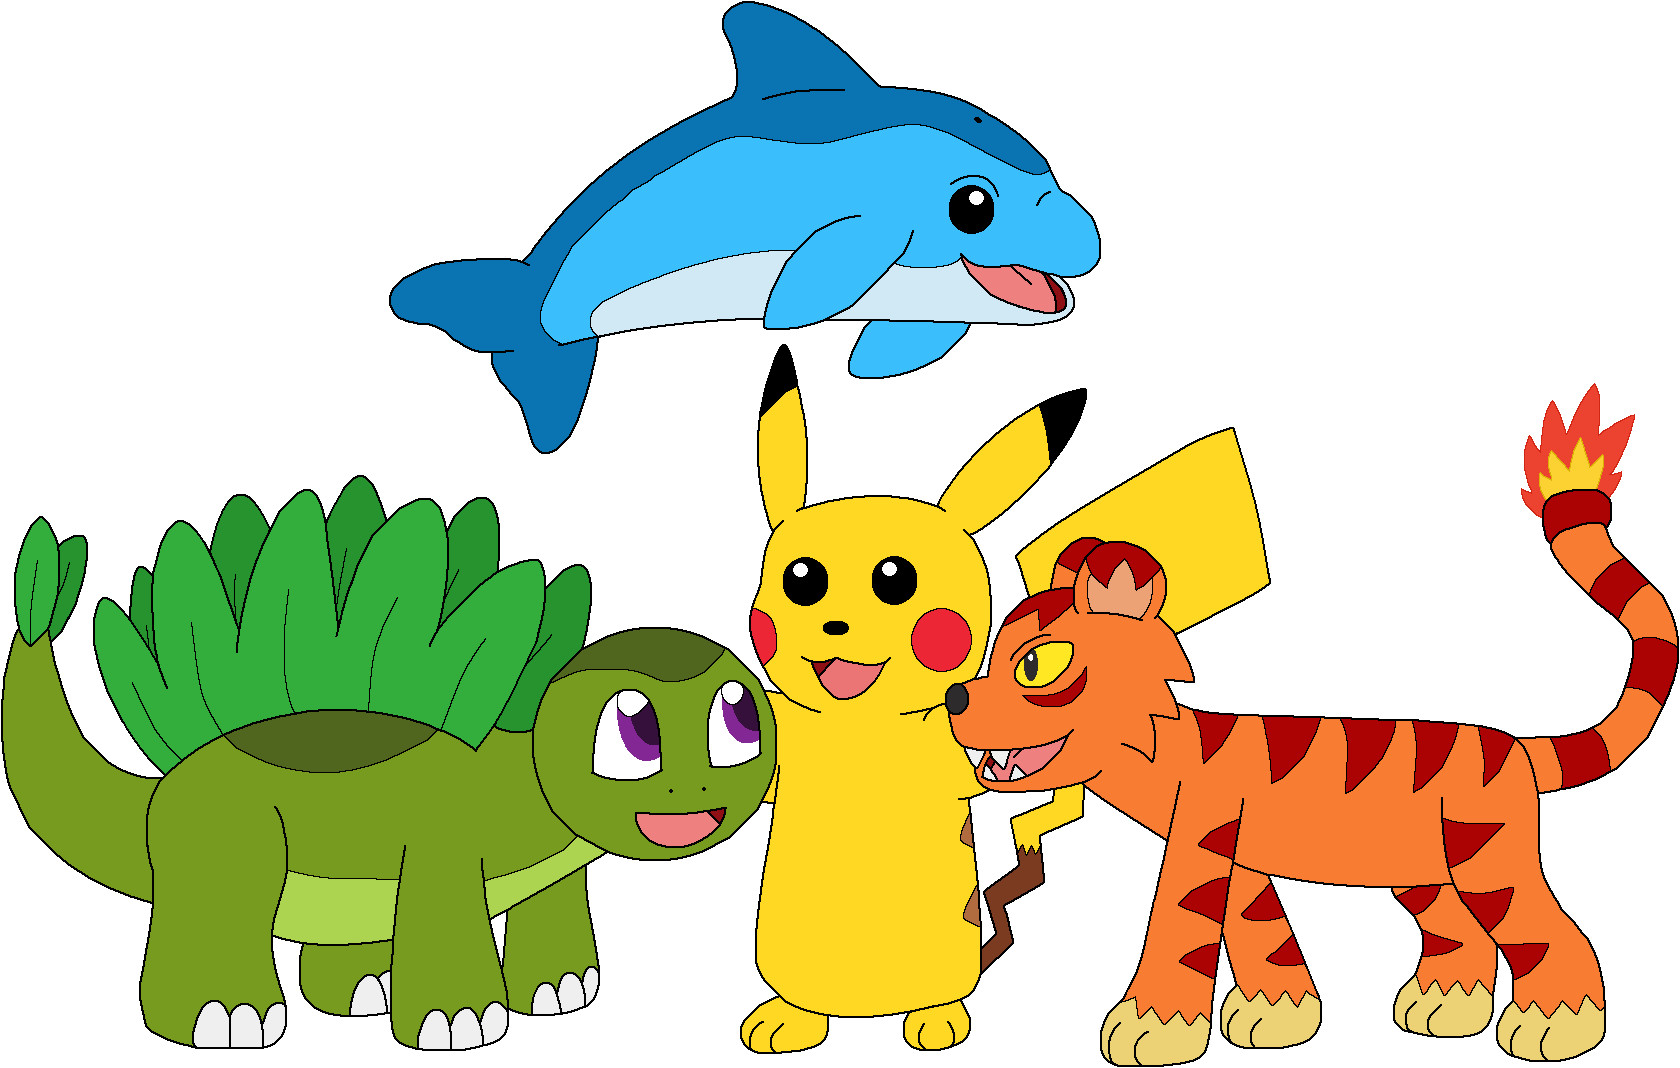 Pikachu and his new friends by MCsaurus on DeviantArt